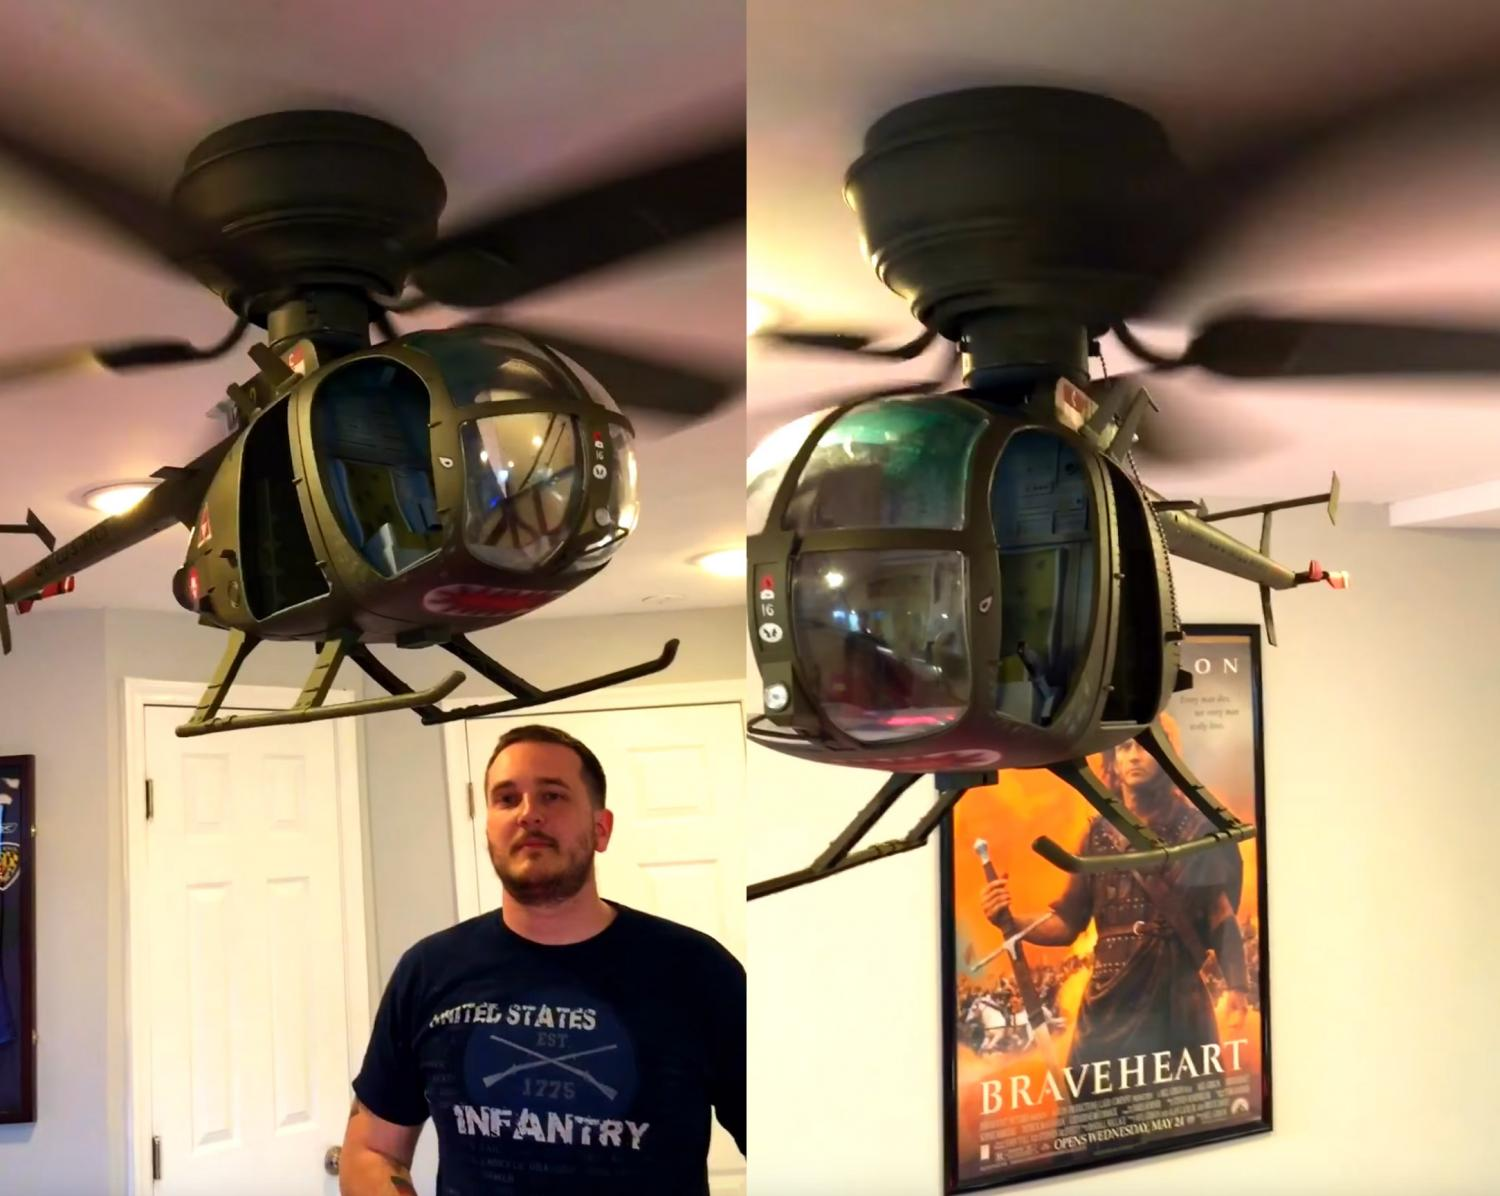 DIY Helicopter Ceiling Fan - How to turn your ceiling fan into a helicopter